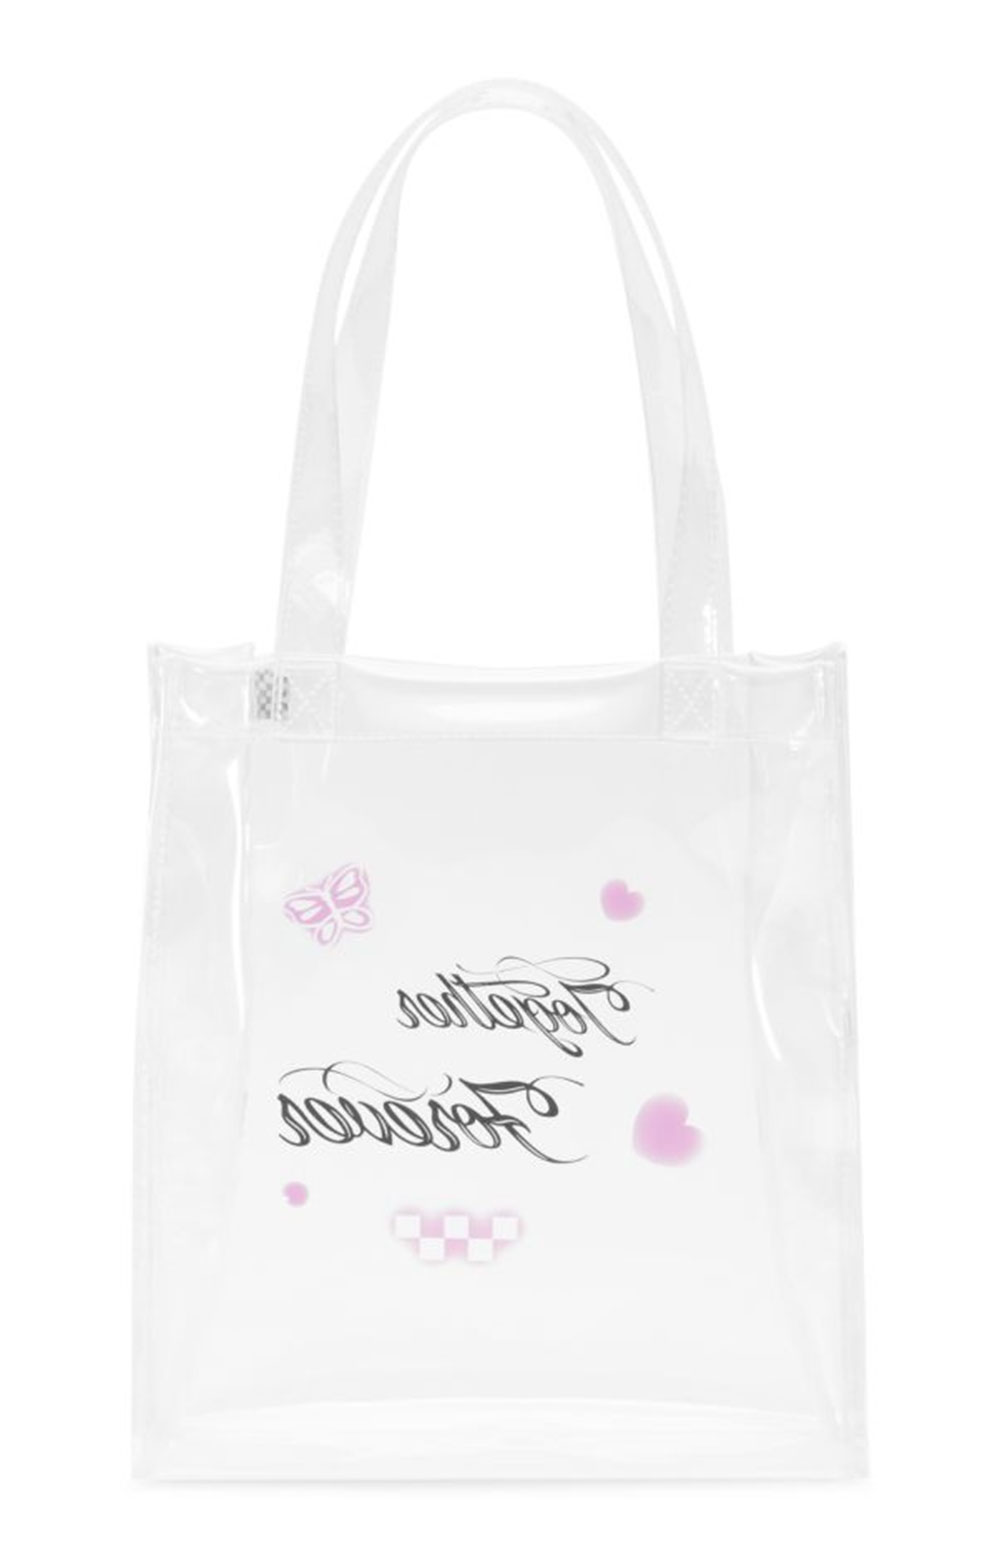 Together Forever Mini Tote Bag  2